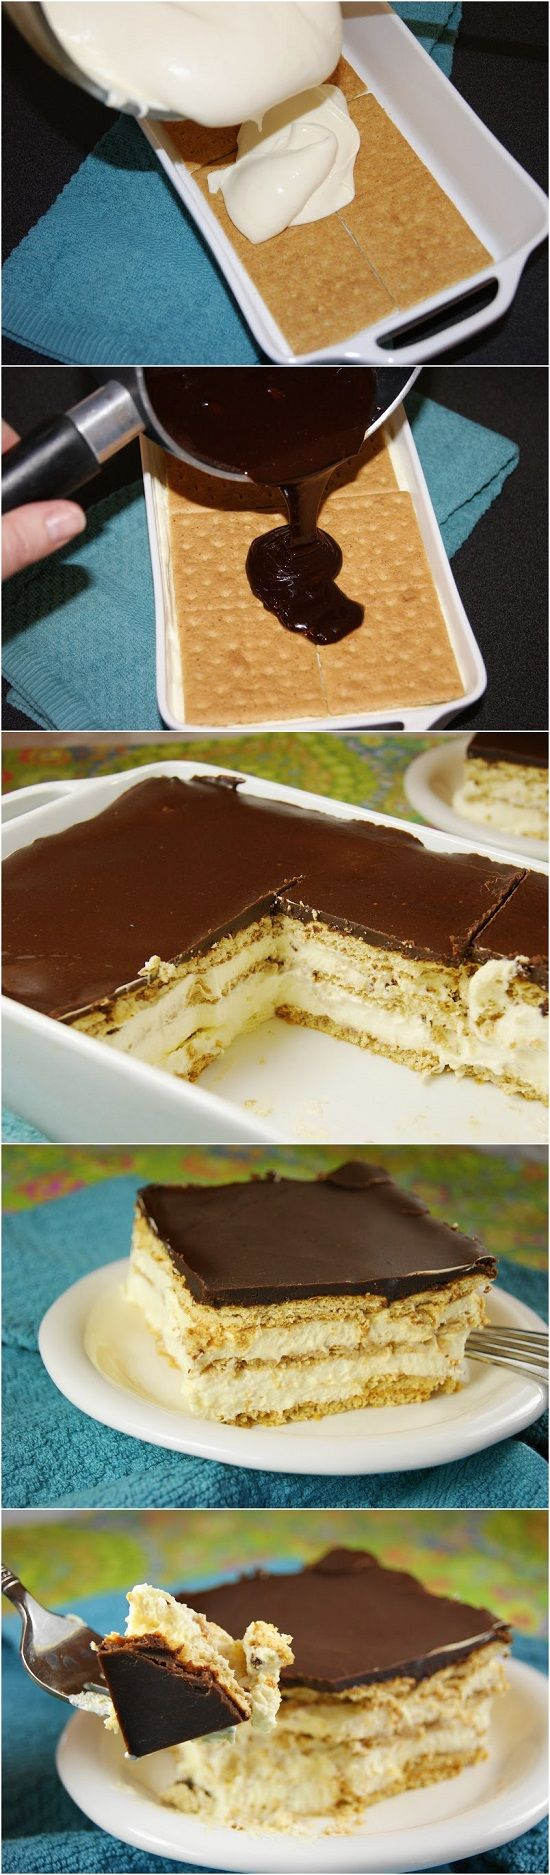 Eclair, No bake eclair cake and Cakes on Pinterest